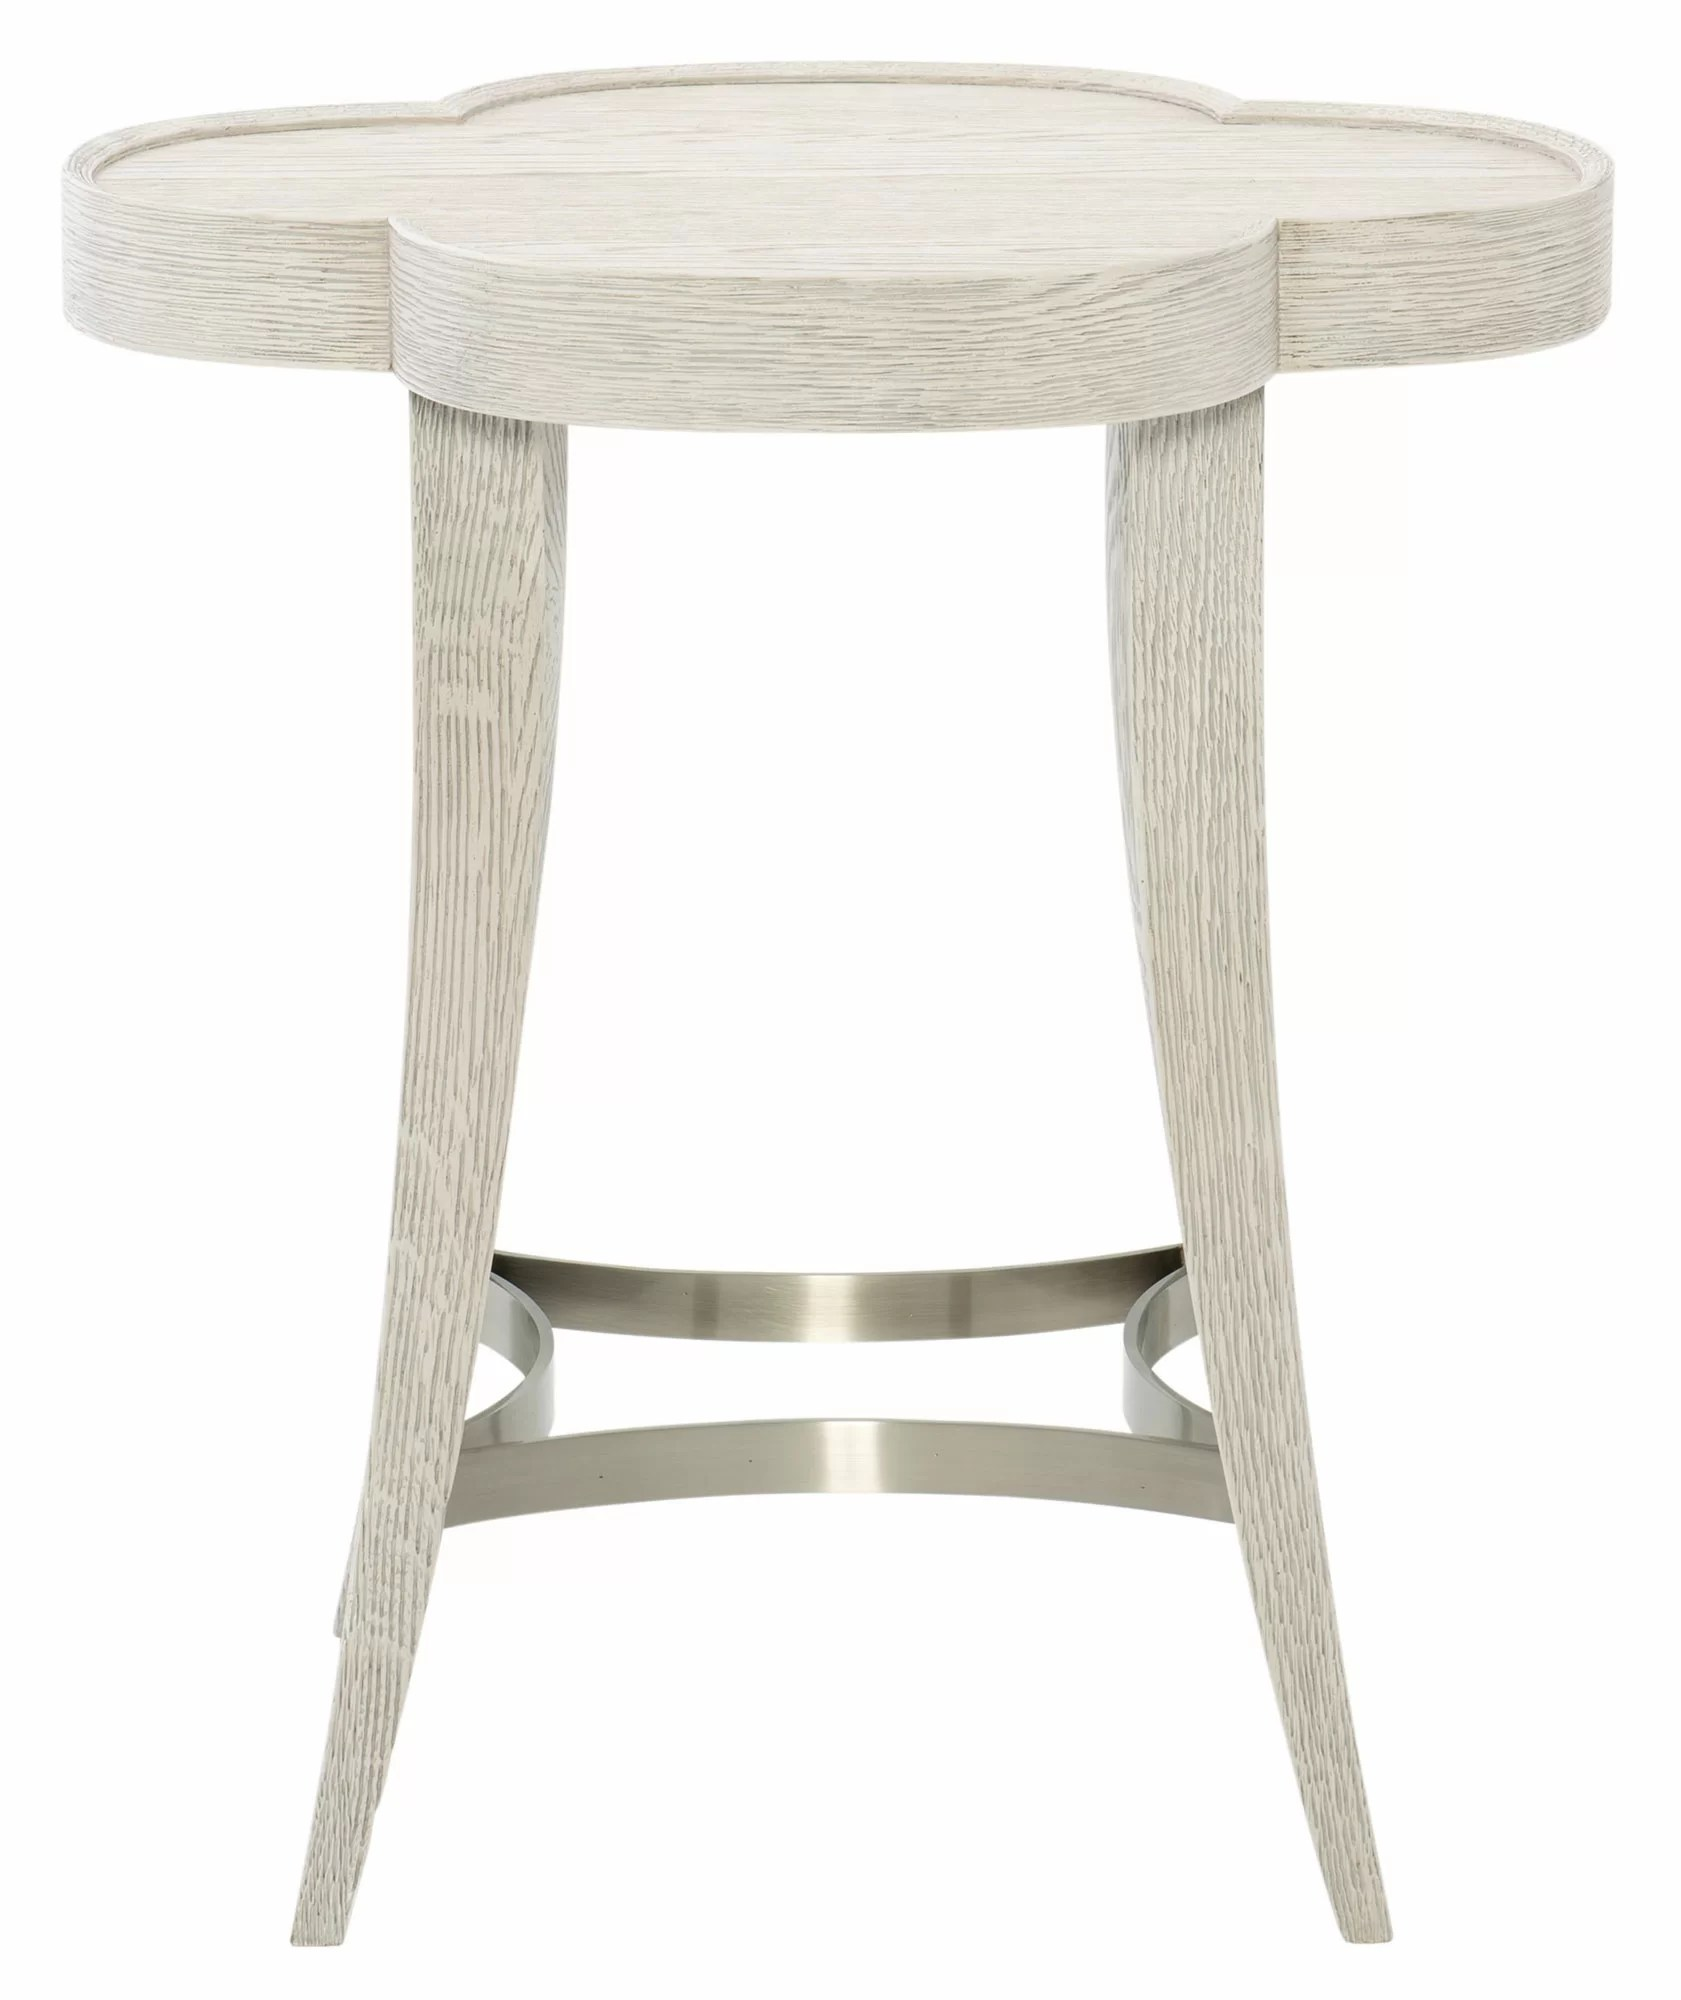 Classic Table Shapes Domaine End Table